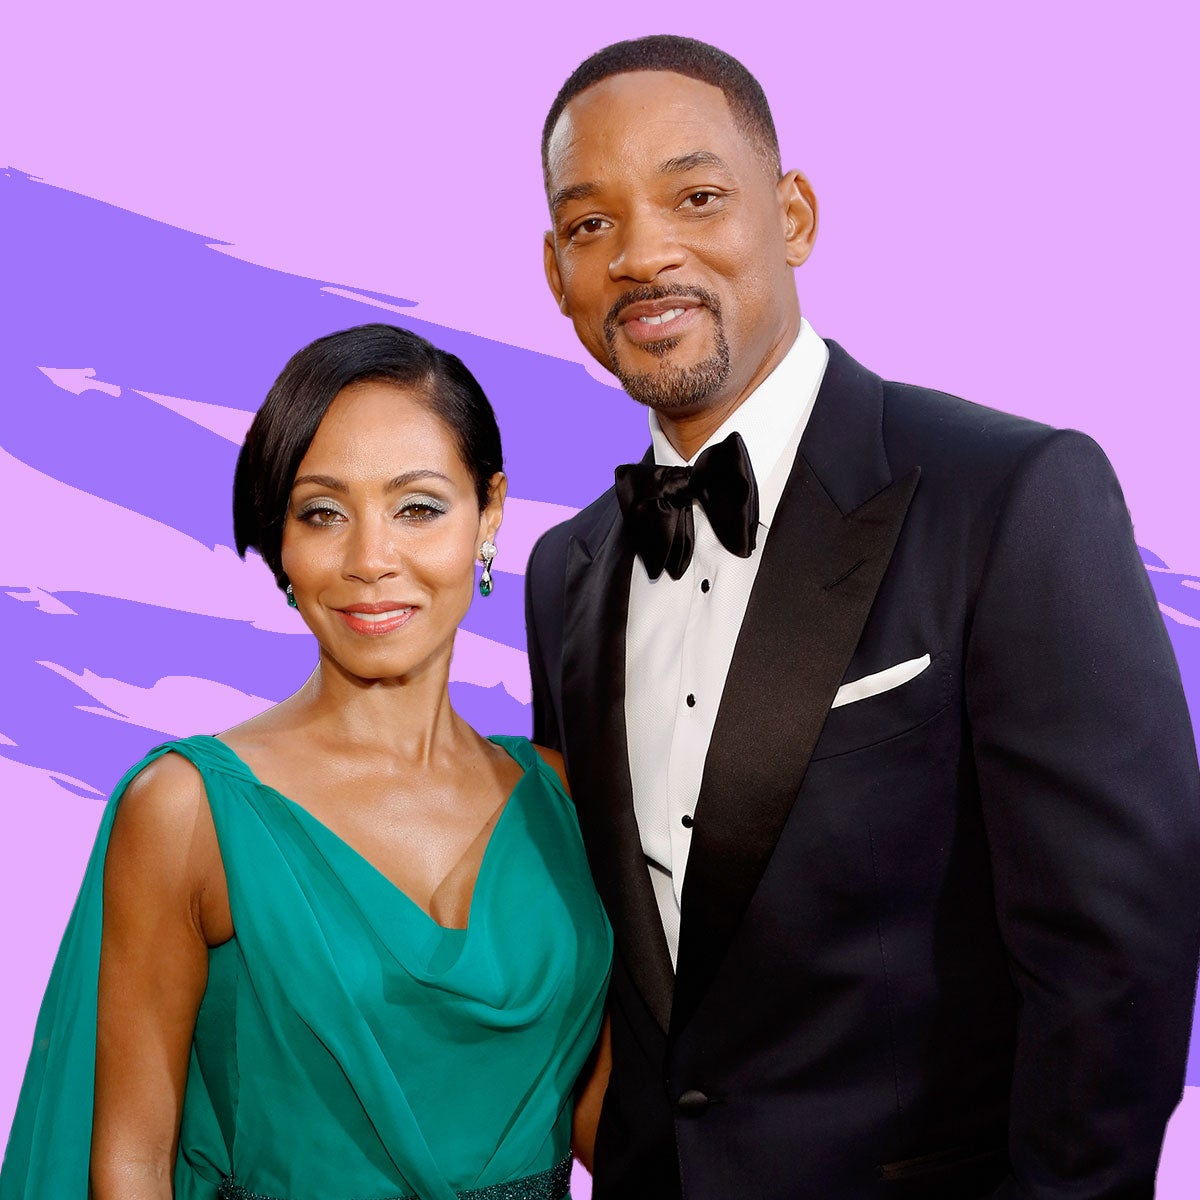 Are will smith and jada pinkett smith divorcing